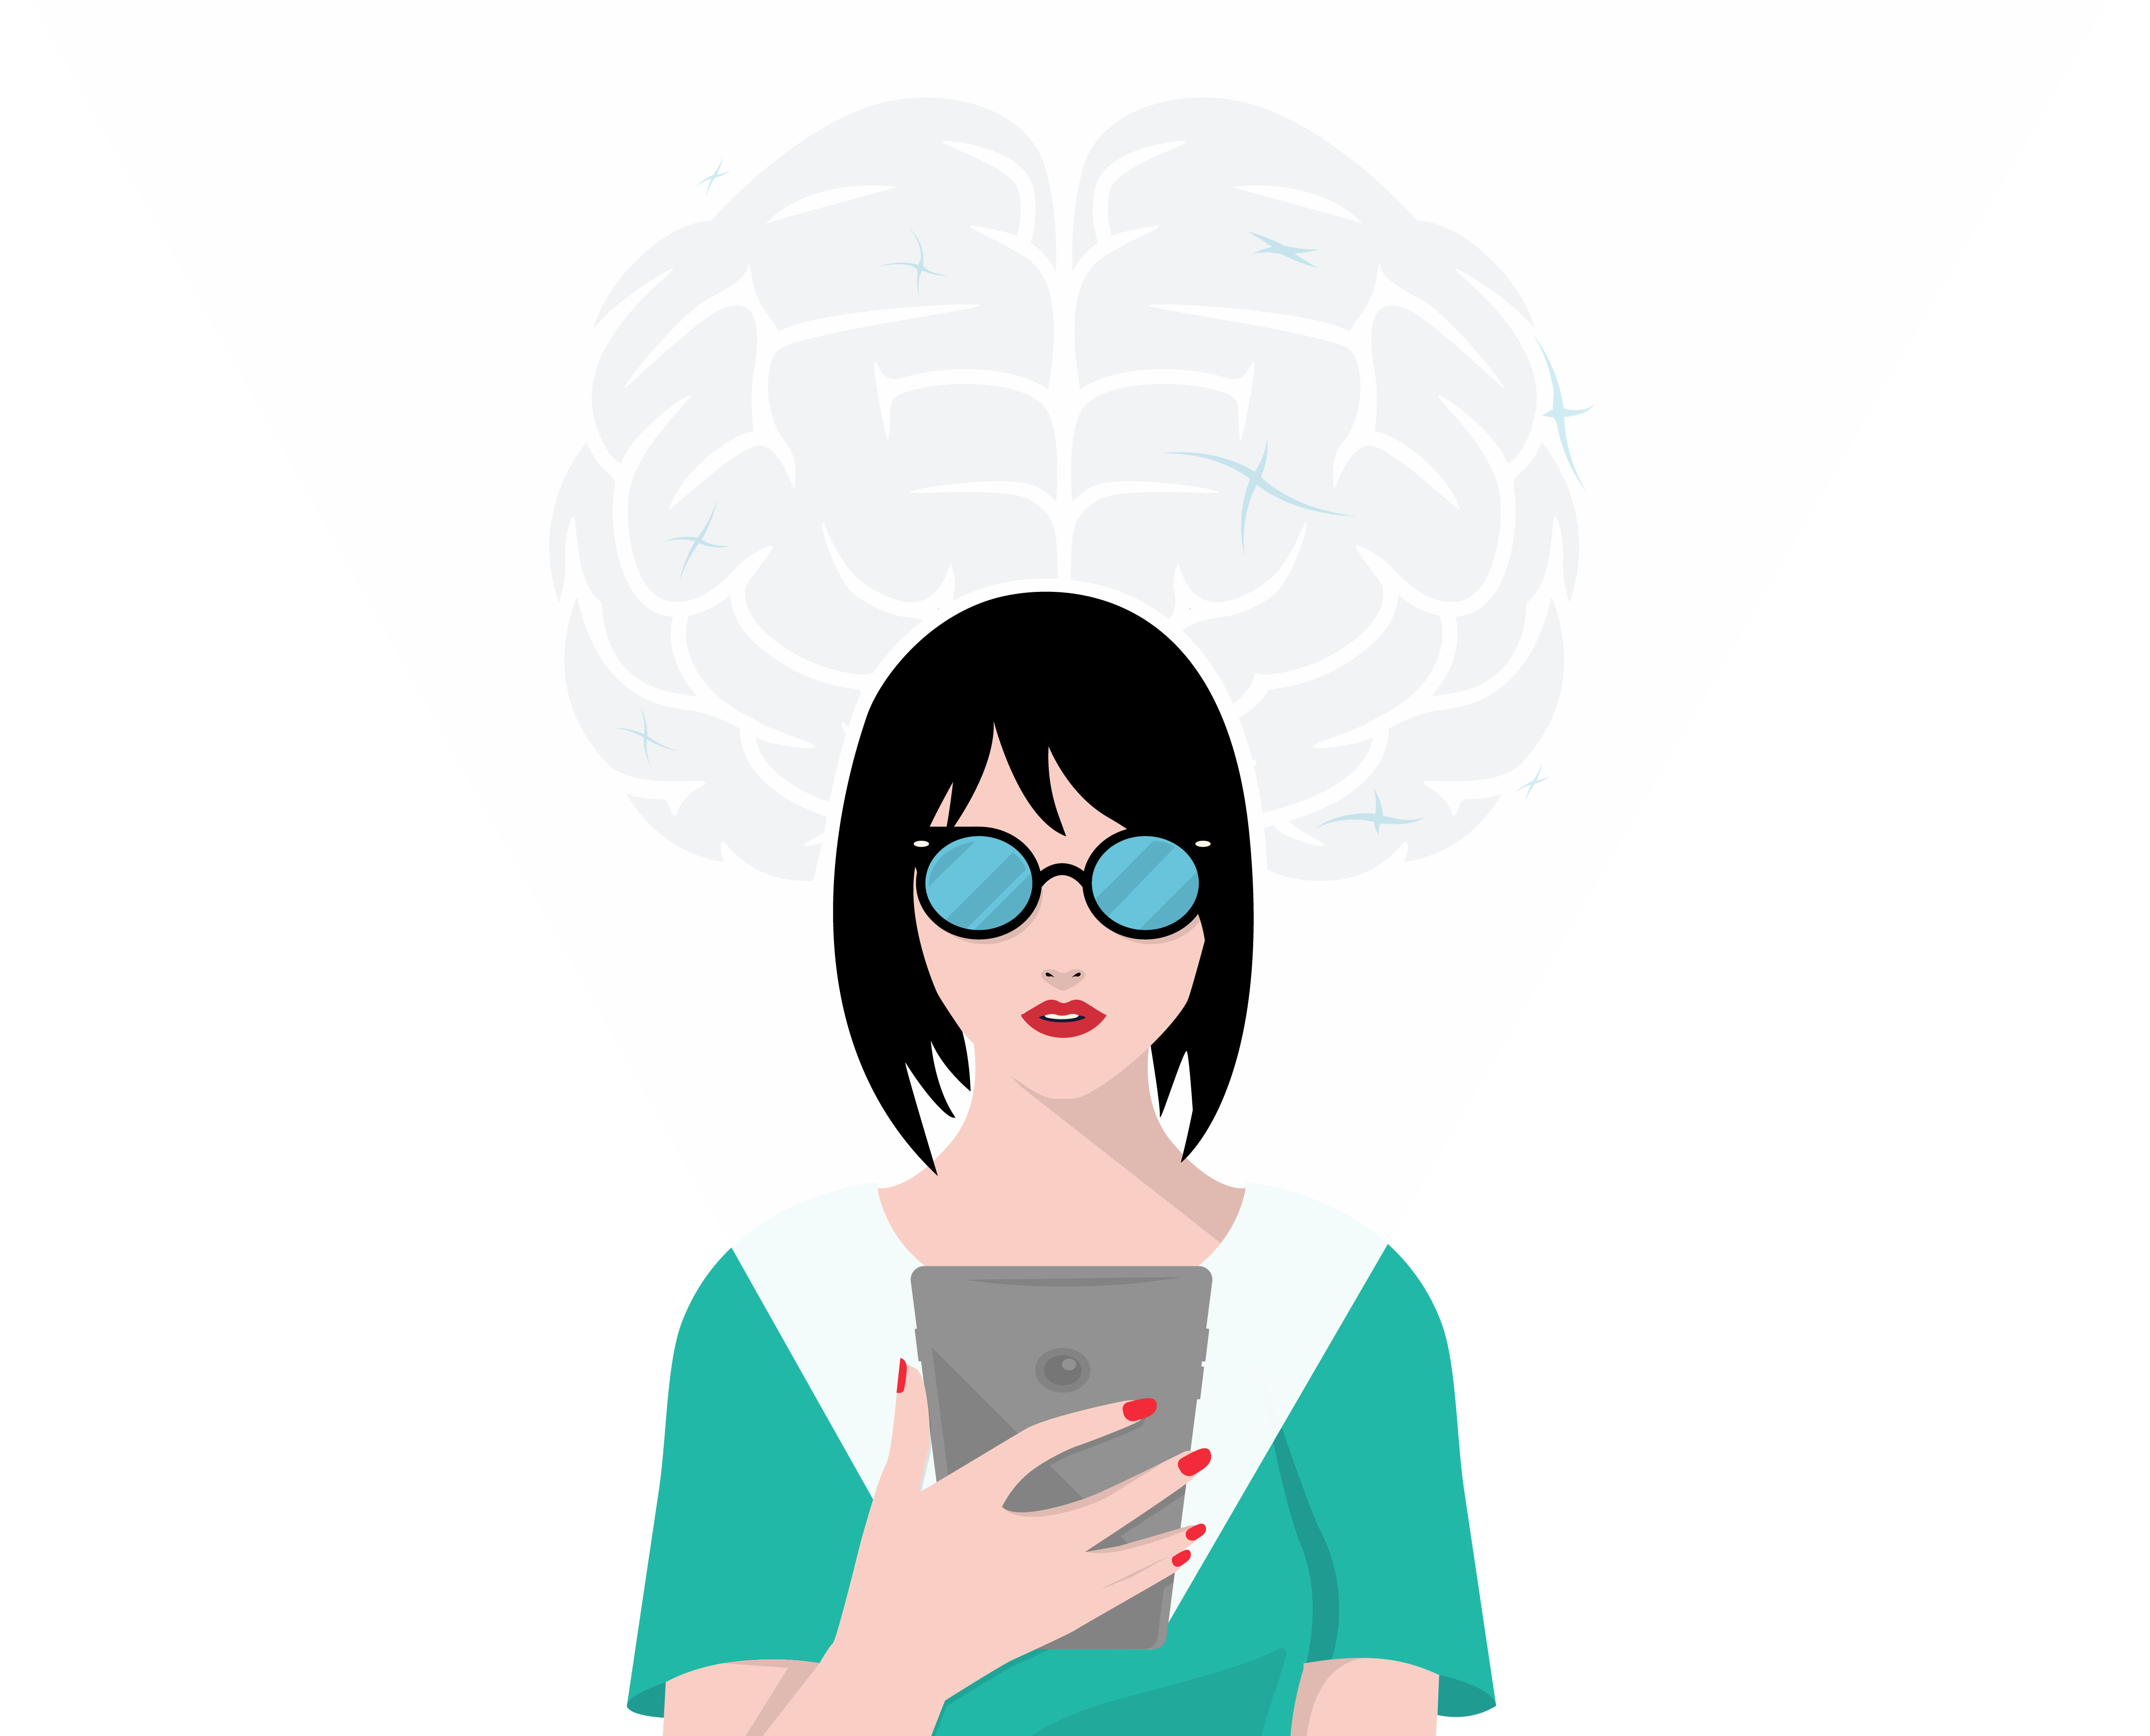 Mobile learning good for the brain